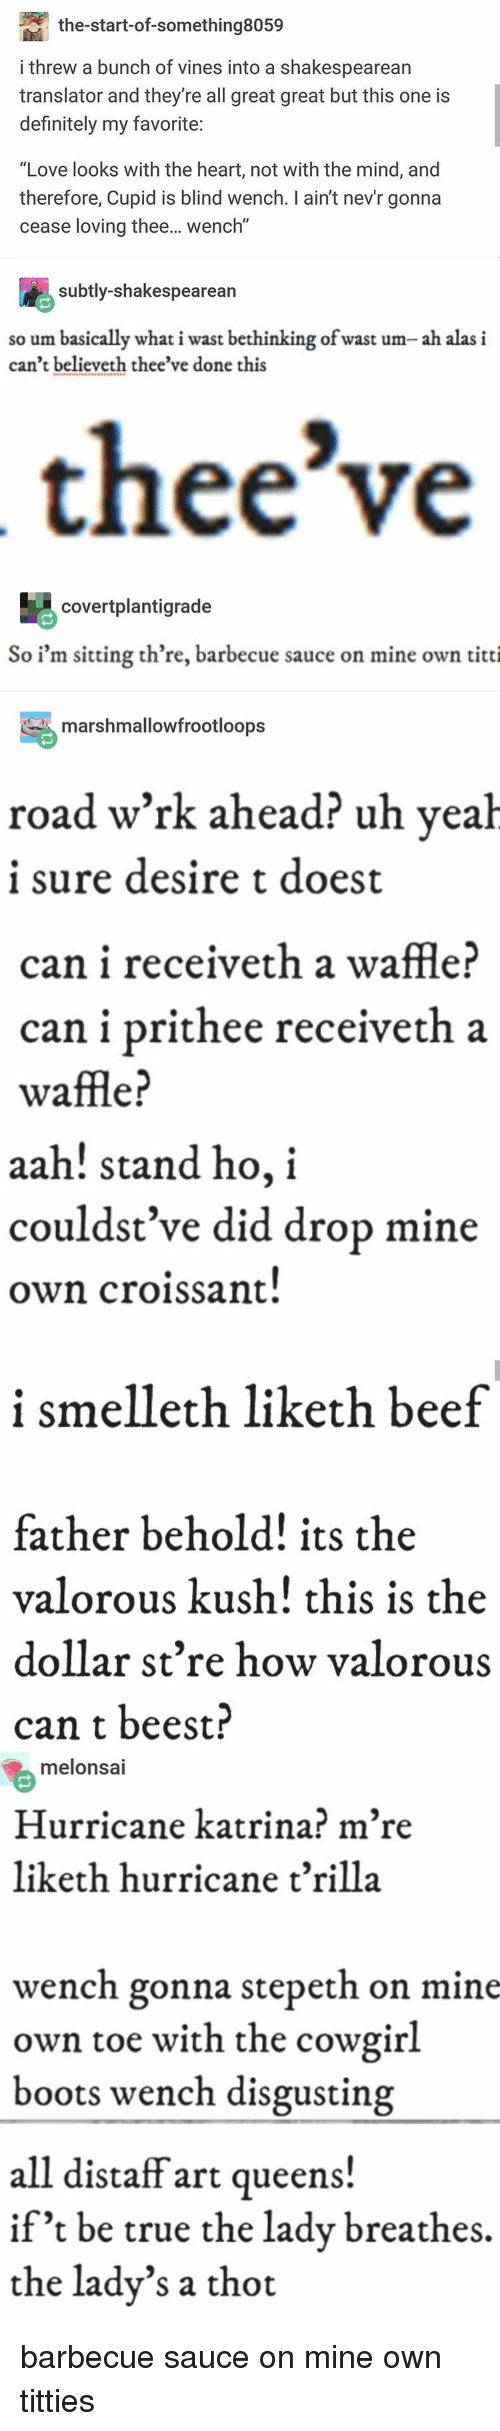 """Beef, Definitely, and Love: the-start-of-something8059  i threw a bunch of vines into a shakespearean  translator and they're all great great but this one is  definitely my favorite  """"Love looks with the heart, not with the mind, and  therefore, Cupid is blind wench. I ain't nev'r gonna  cease loving thee... wench""""  subtly-shakespearean  so um basically what i wast bethinking of wast um- ah alas i  can't believeth thee've done this  thee've  covertplantigrade  So i'm sitting th're, barbecue sauce on mine own titti  marshmallowfrootloops  road w'rk ahead? uh veah  1 sure desire t doest  can i receiveth a waffle?  can i prithee receiveth a  waffle?  aah! stand ho, i  couldst ve did drop mine  own croissant  i smelleth liketh beef  father behold! its the  valorous kush! this is the  dollar st're how valorous  can t beest?  melonsai  Hurricane katrina? m're  liketh hurricane t'rilla  wench gonna stepeth on mine  own toe with the cowgirl  boots wench disgusting  all distaff art queens!  if't be true the ladv breathes,  the lady's a thot barbecue sauce on mine own titties"""